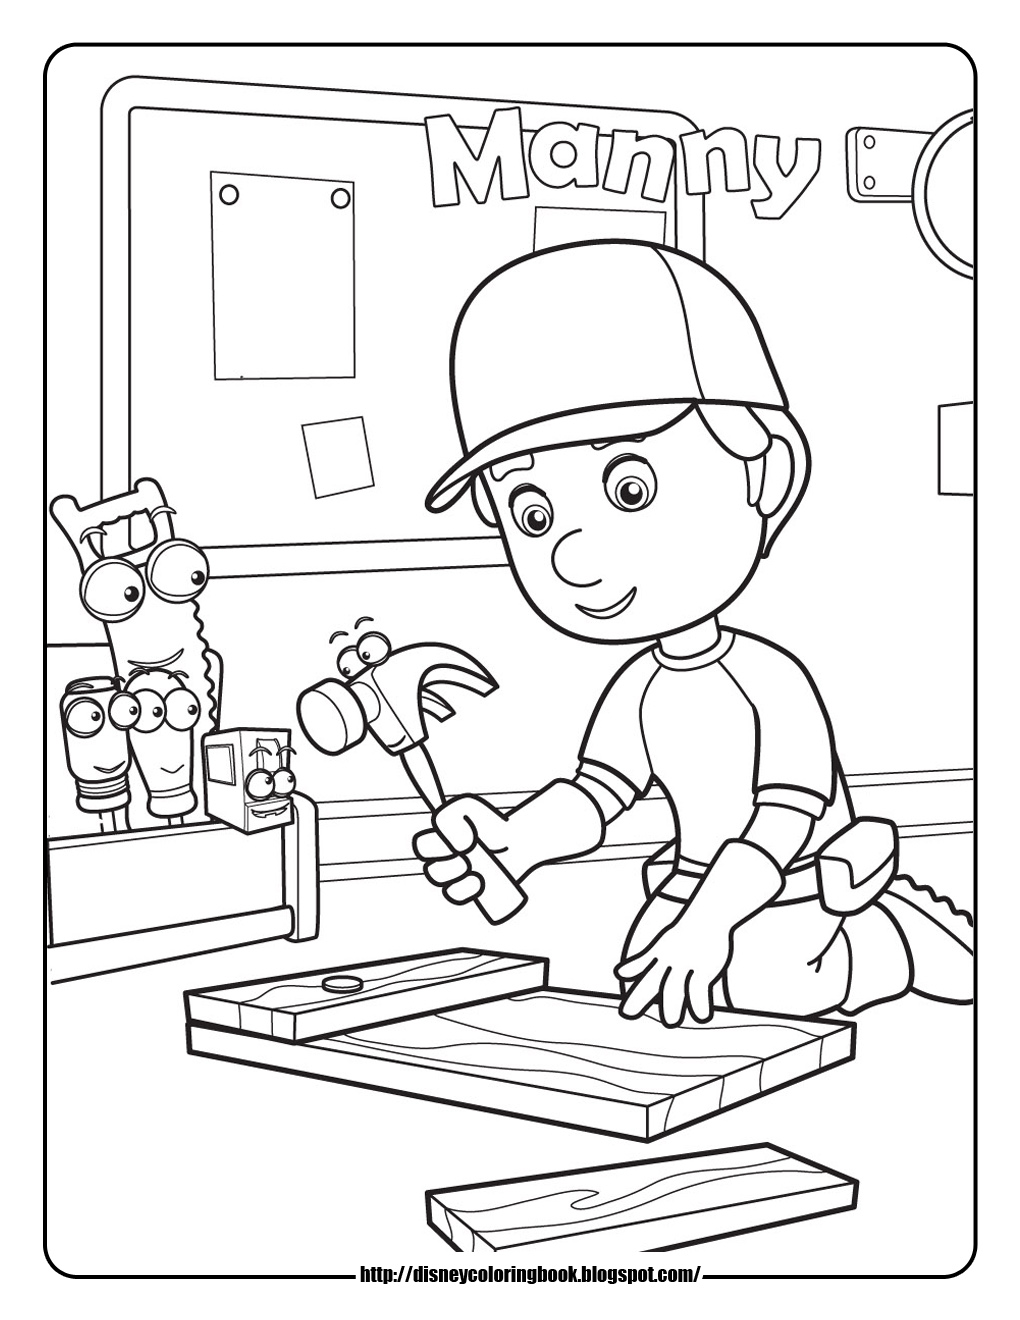 Free disney junior colouring pages - Handy Manny Coloring Pages Handy Manny Coloring Pages